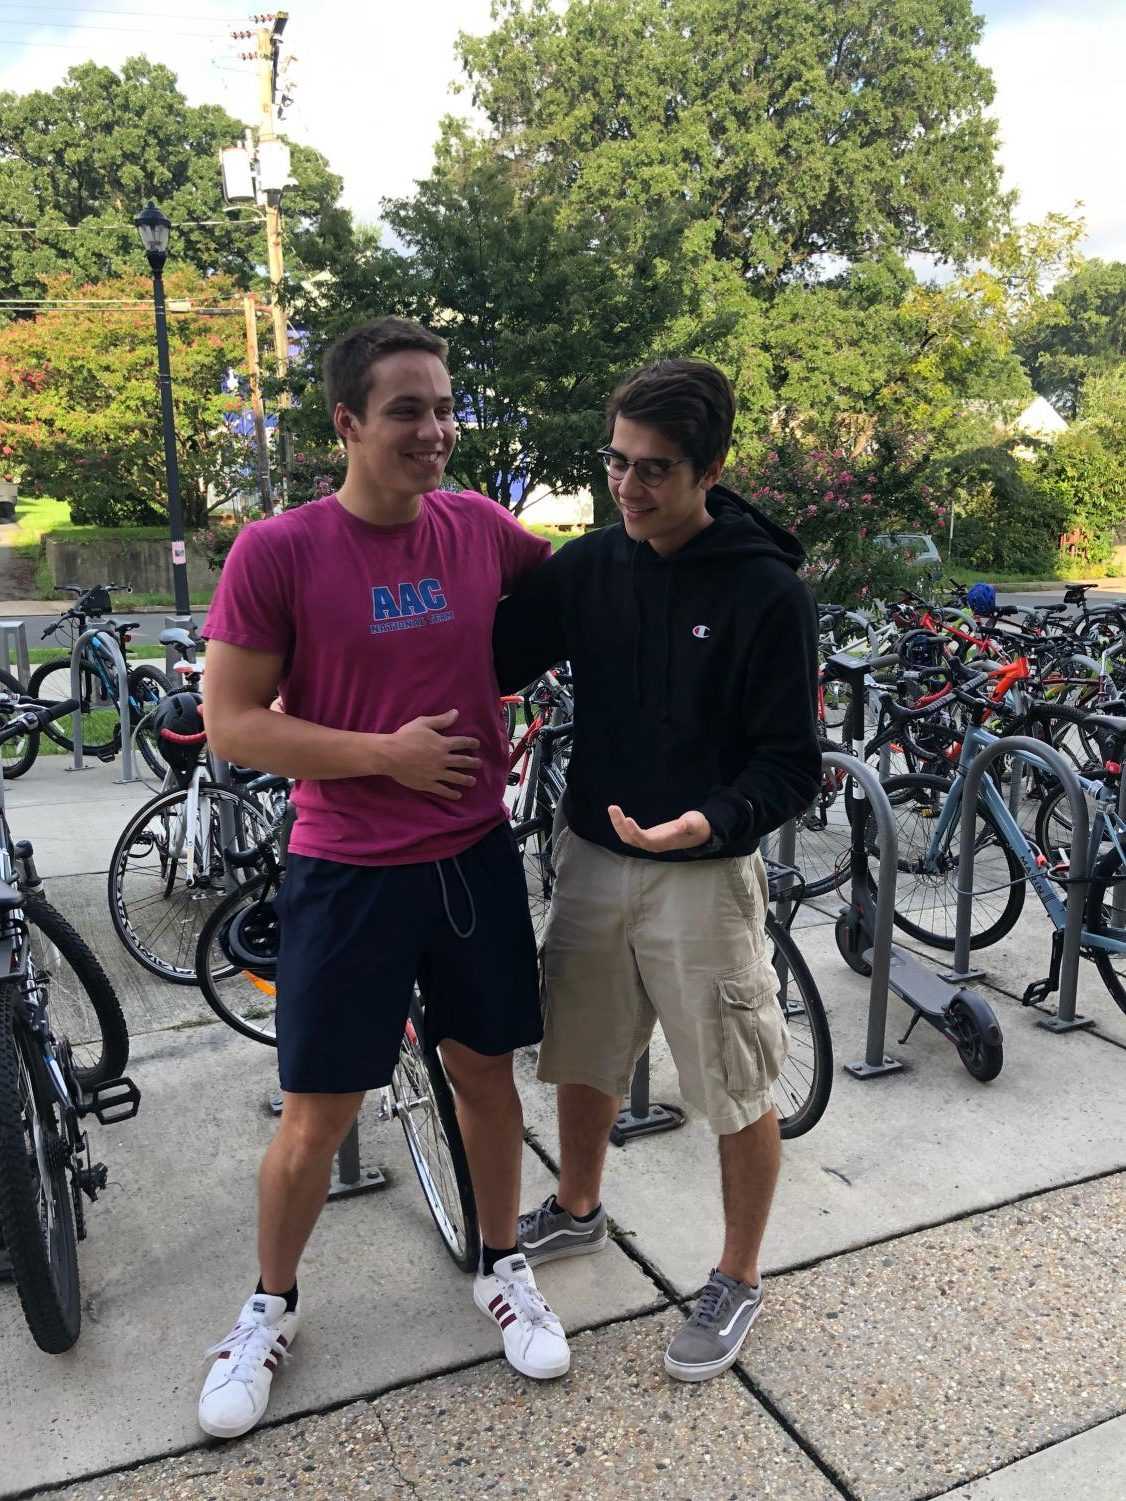 Juniors Noah Toth, right,  and Jack Mowry hang out around the bike racks. They are the organizers of the Bike for Cancer fundraiser.